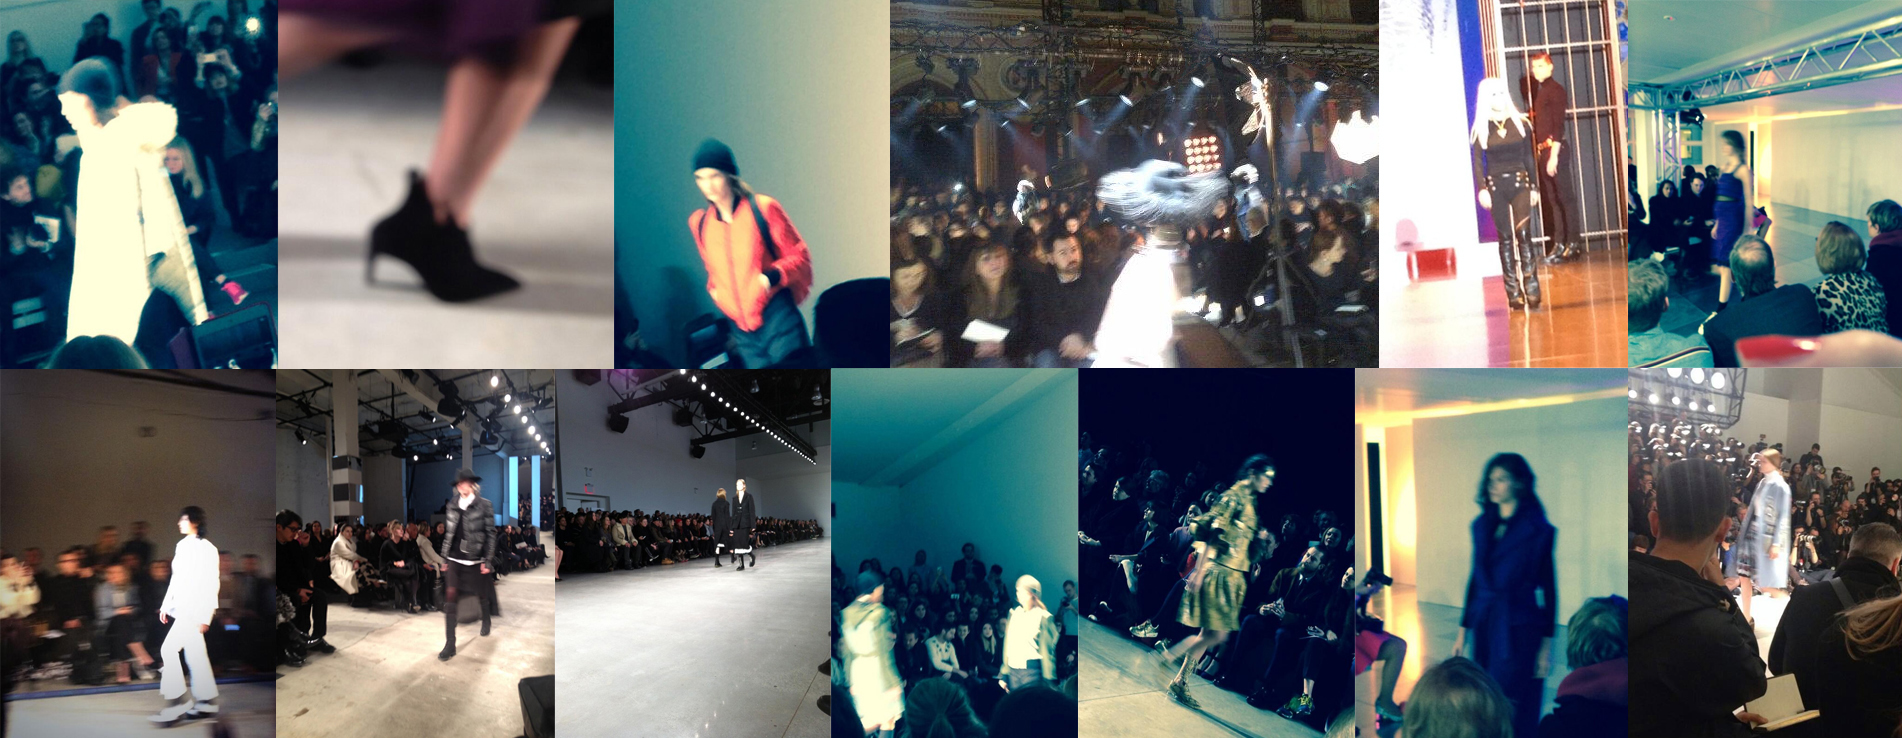 The Autumn/winter 2014 shows. Maybe